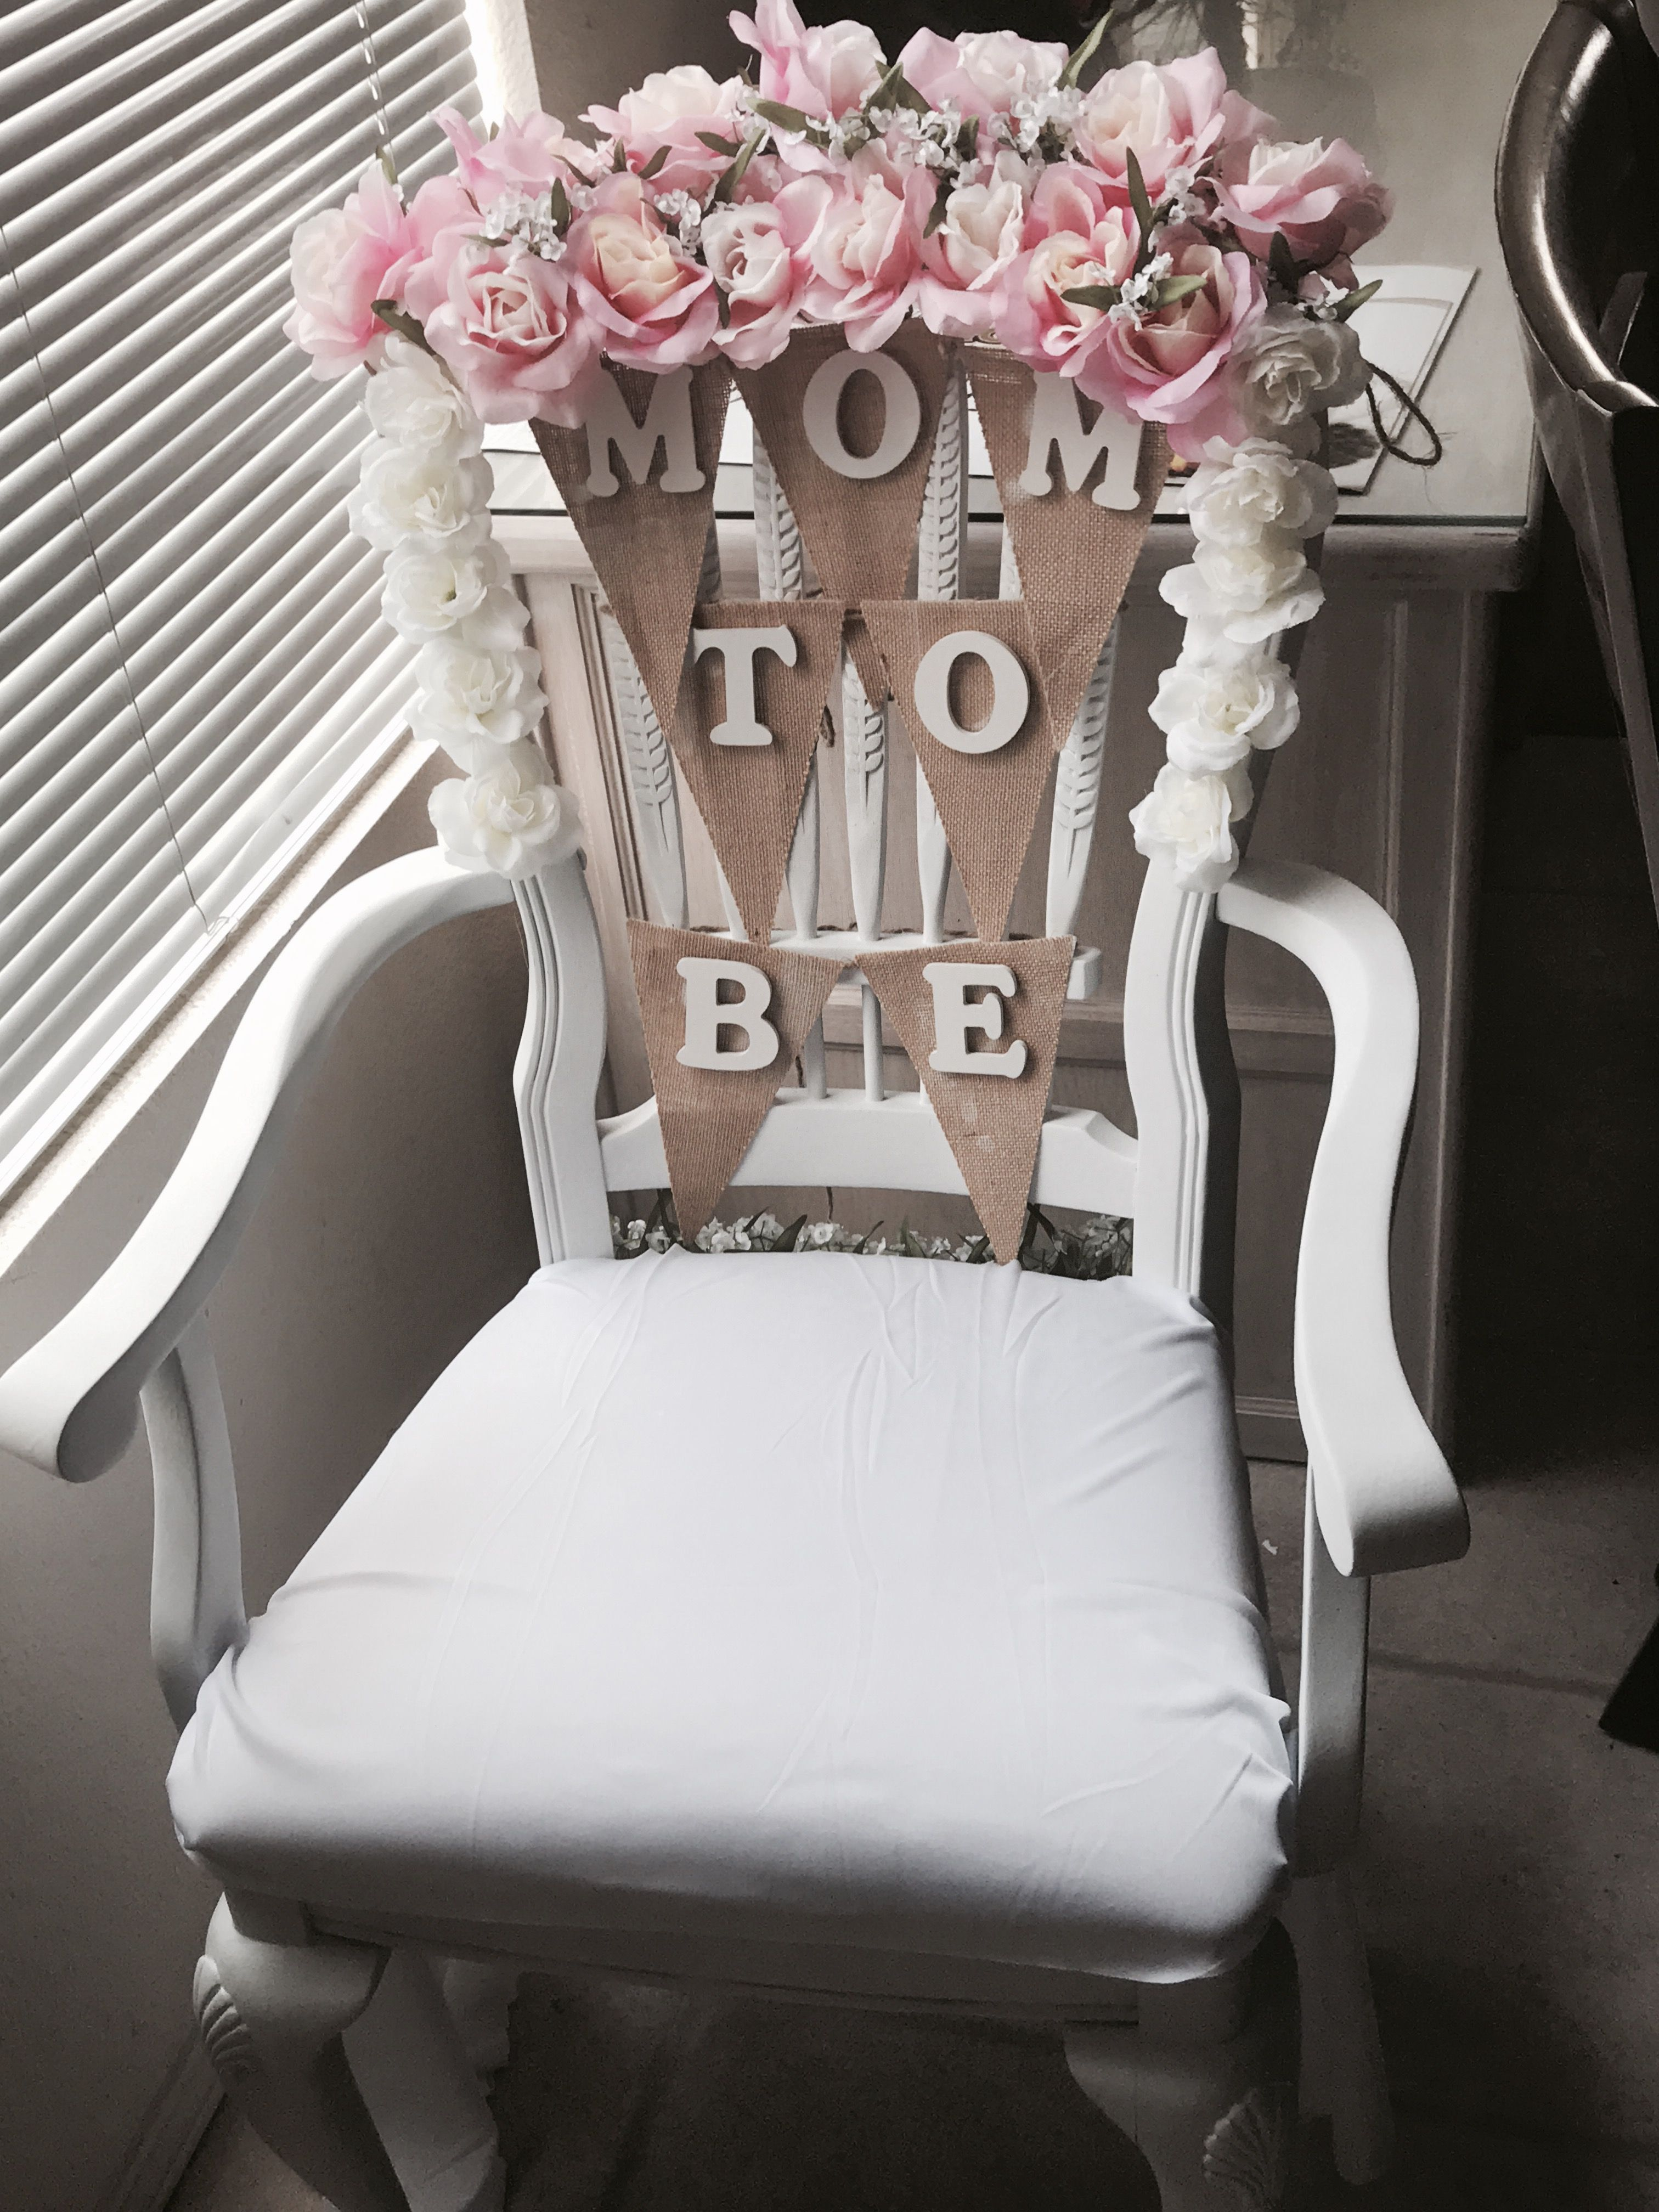 Chair Covers Michaels Modern Kitchen Chairs Baby Shower Idea Flowers From Walmart Wood